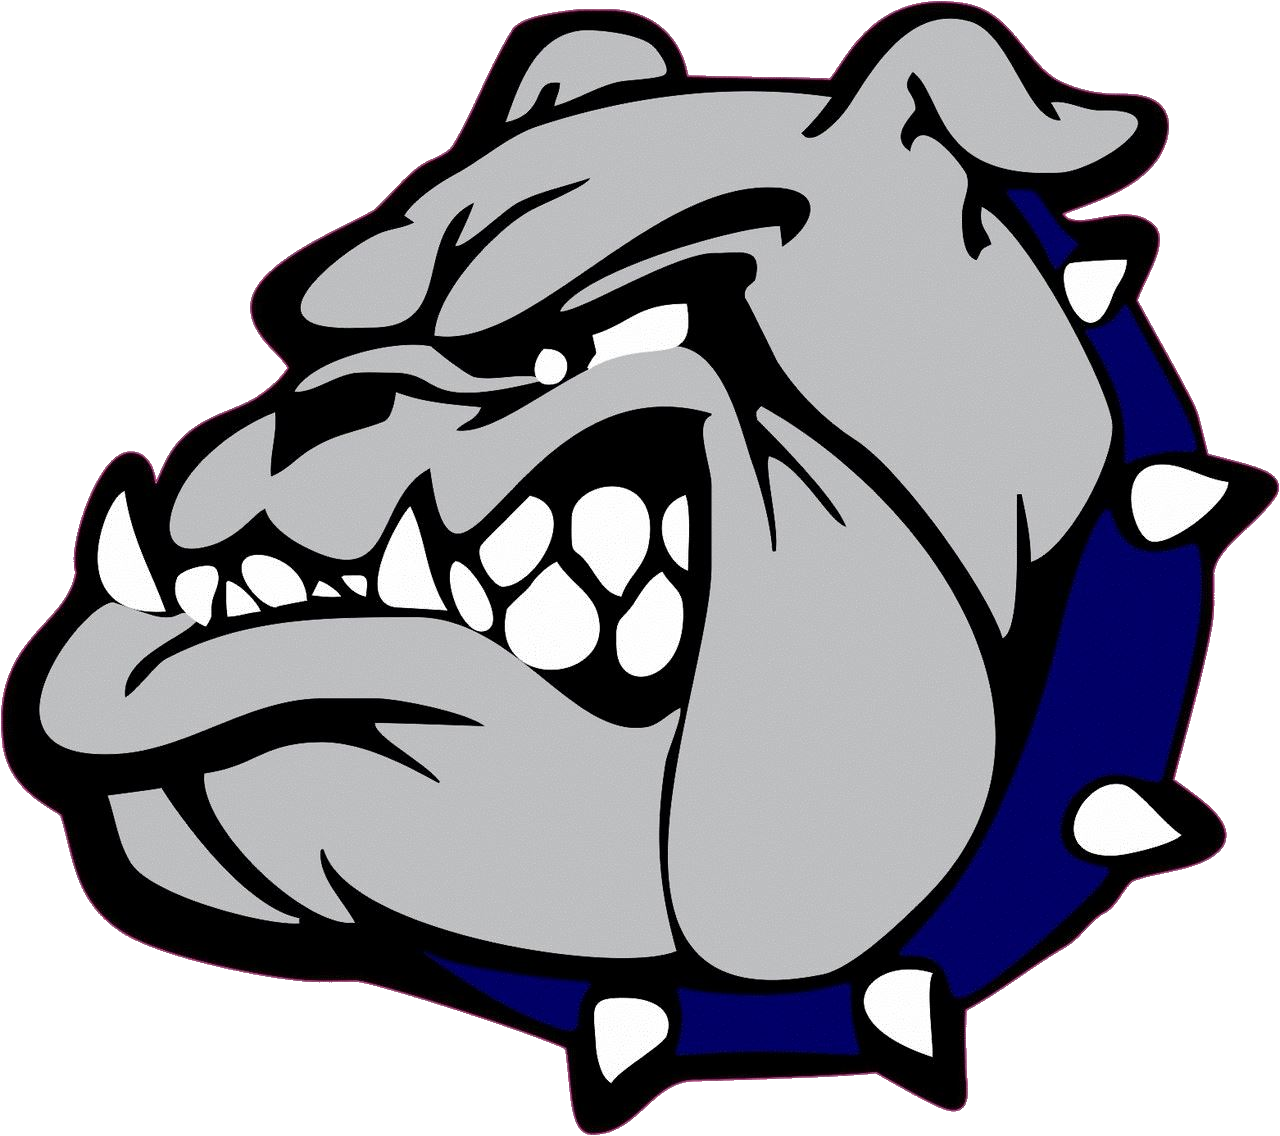 royalty free Bulldog clipart fhs. The red river bulldogs